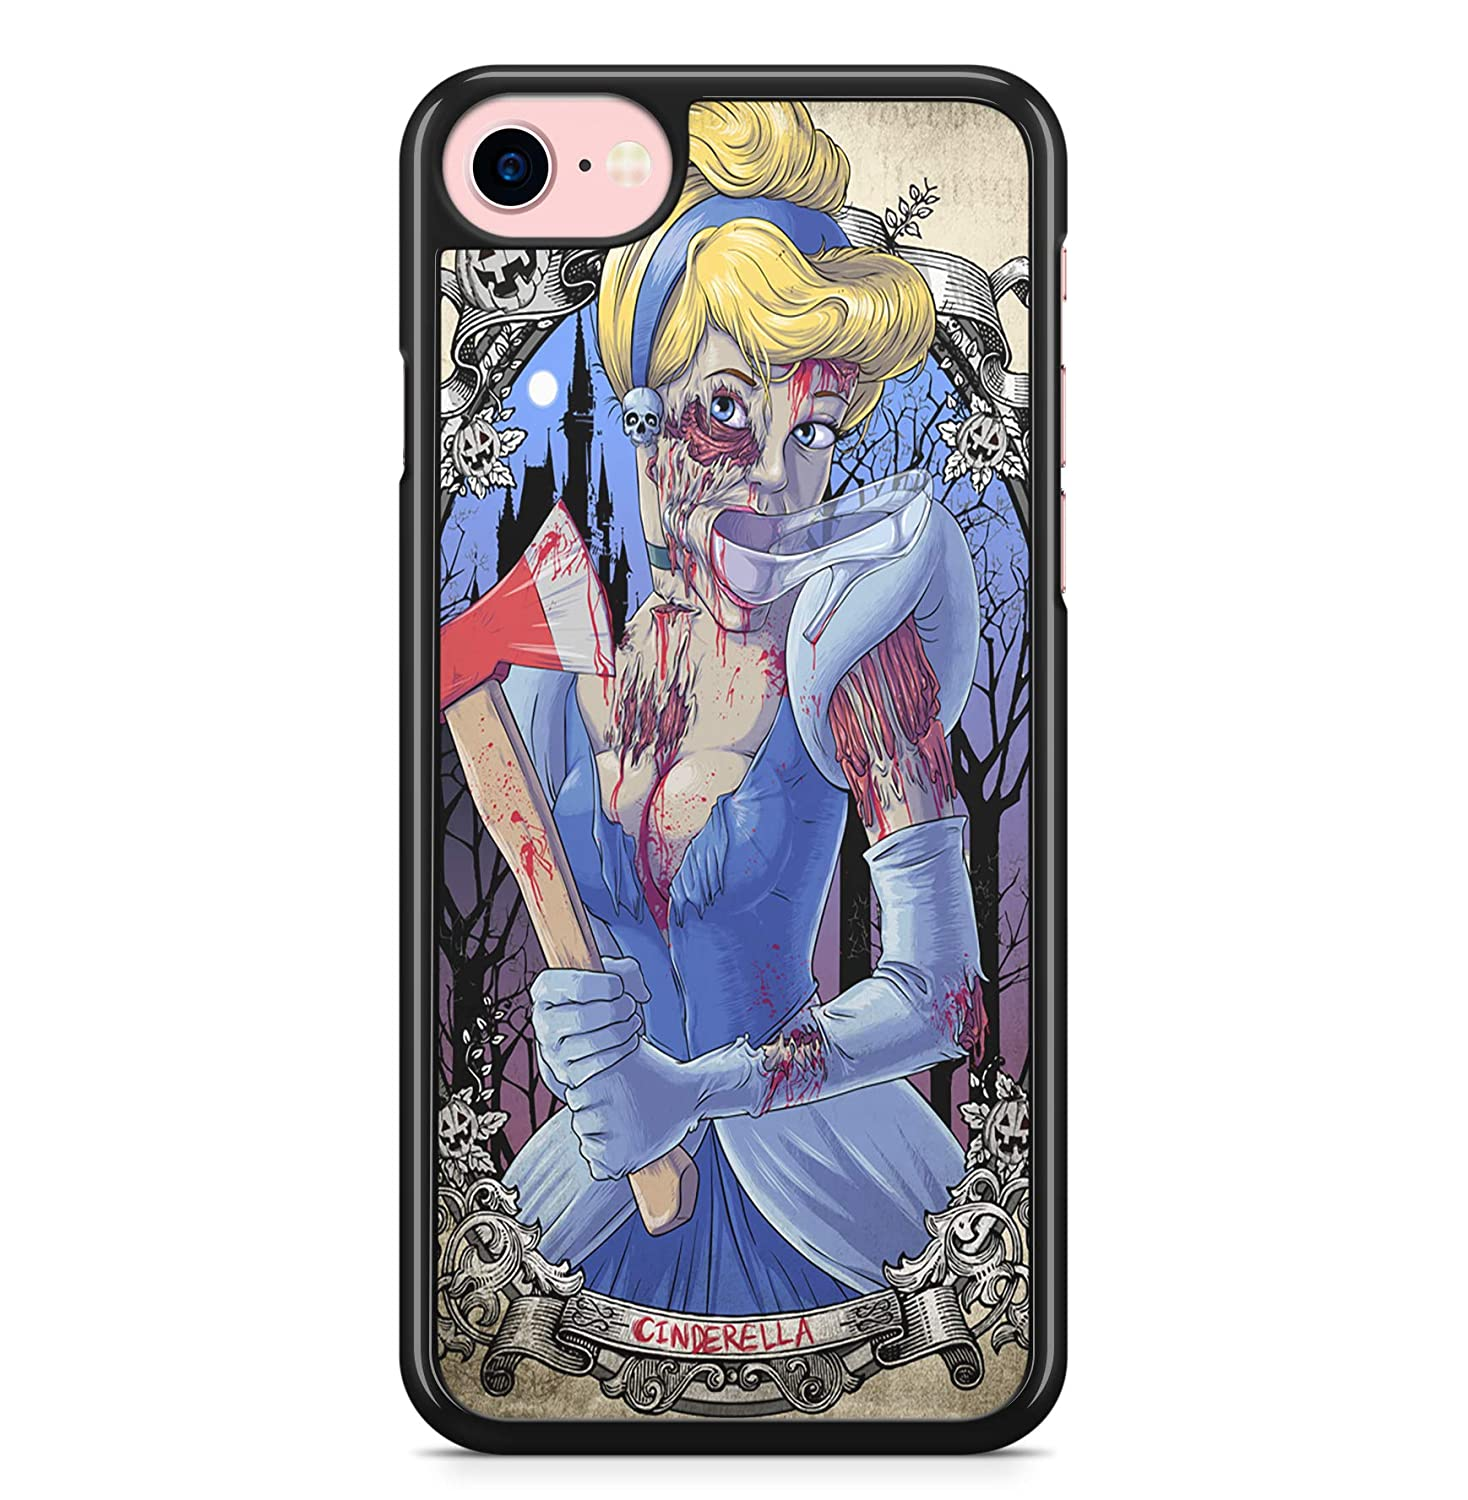 Coque iPhone 4 4S 5 5S SE 5C 6S Plus 7 8 X XS MAX XR Cendrillon Disney Zombie